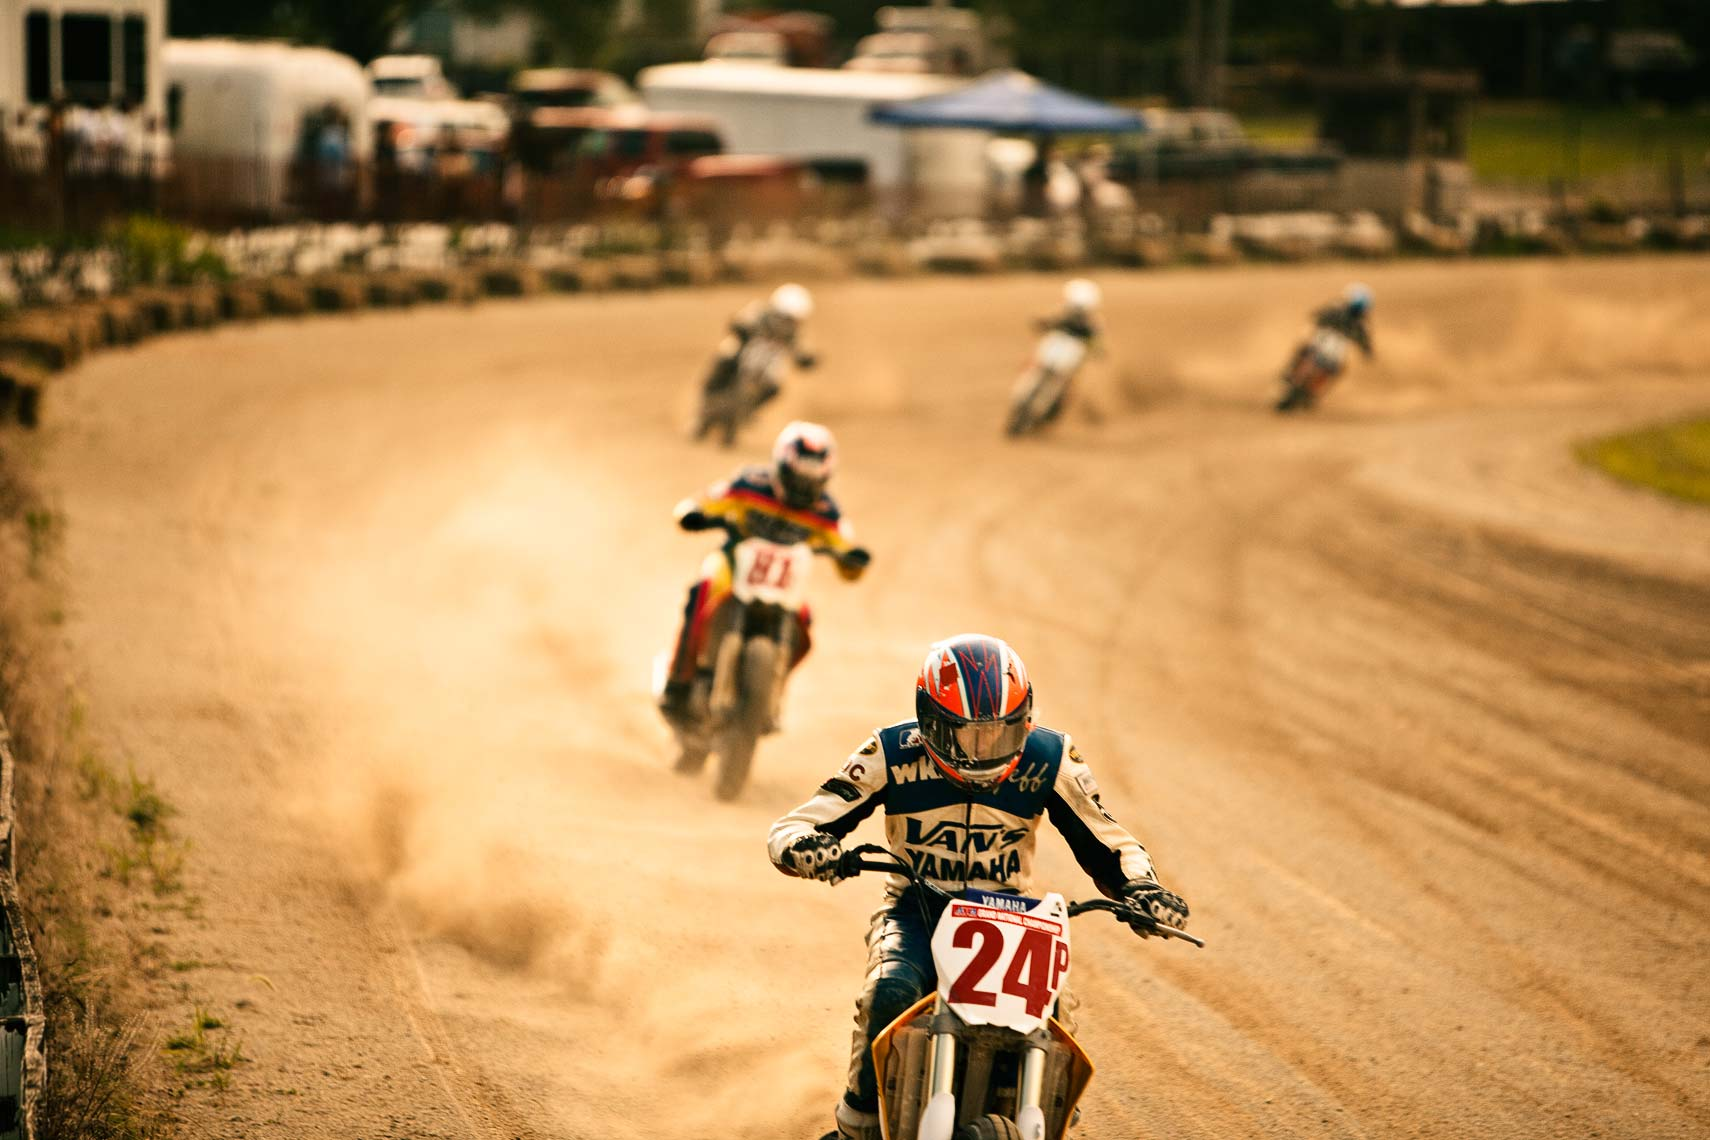 Sports photograph of motorcycle race